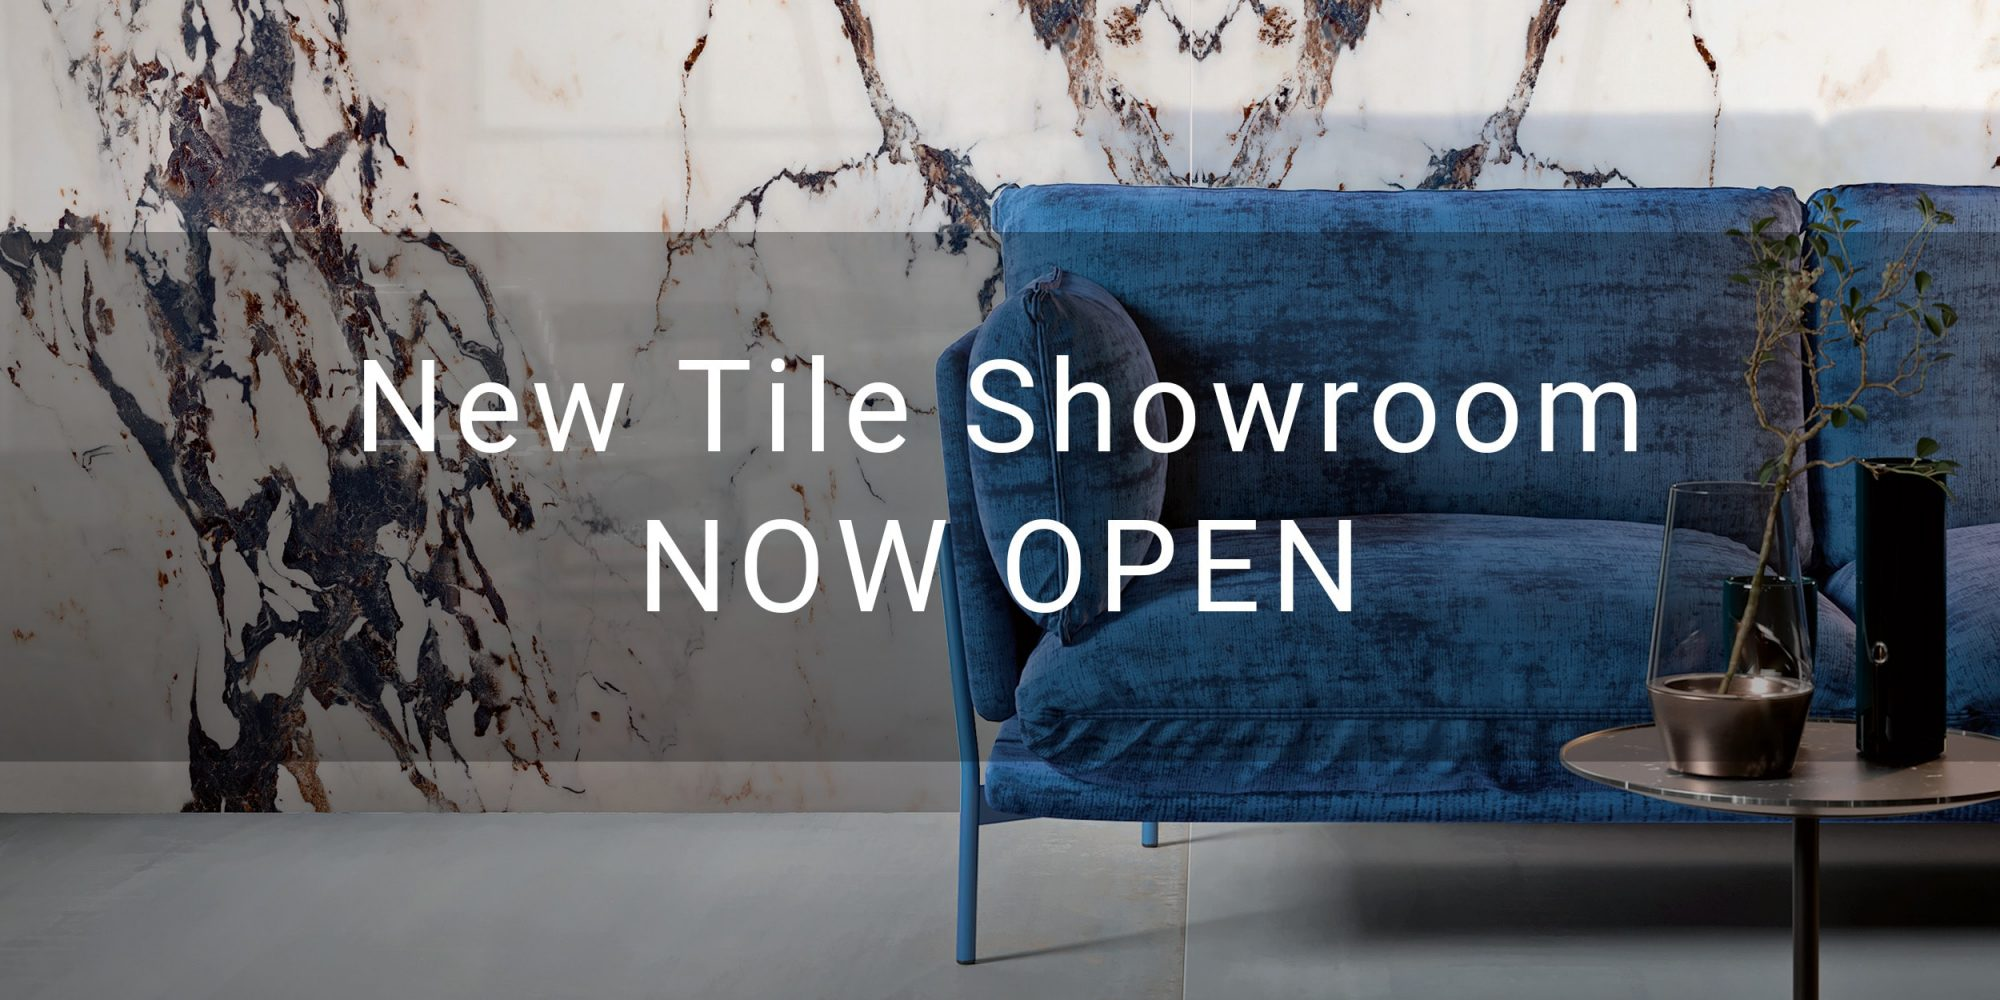 New Tile Showroom Now Open